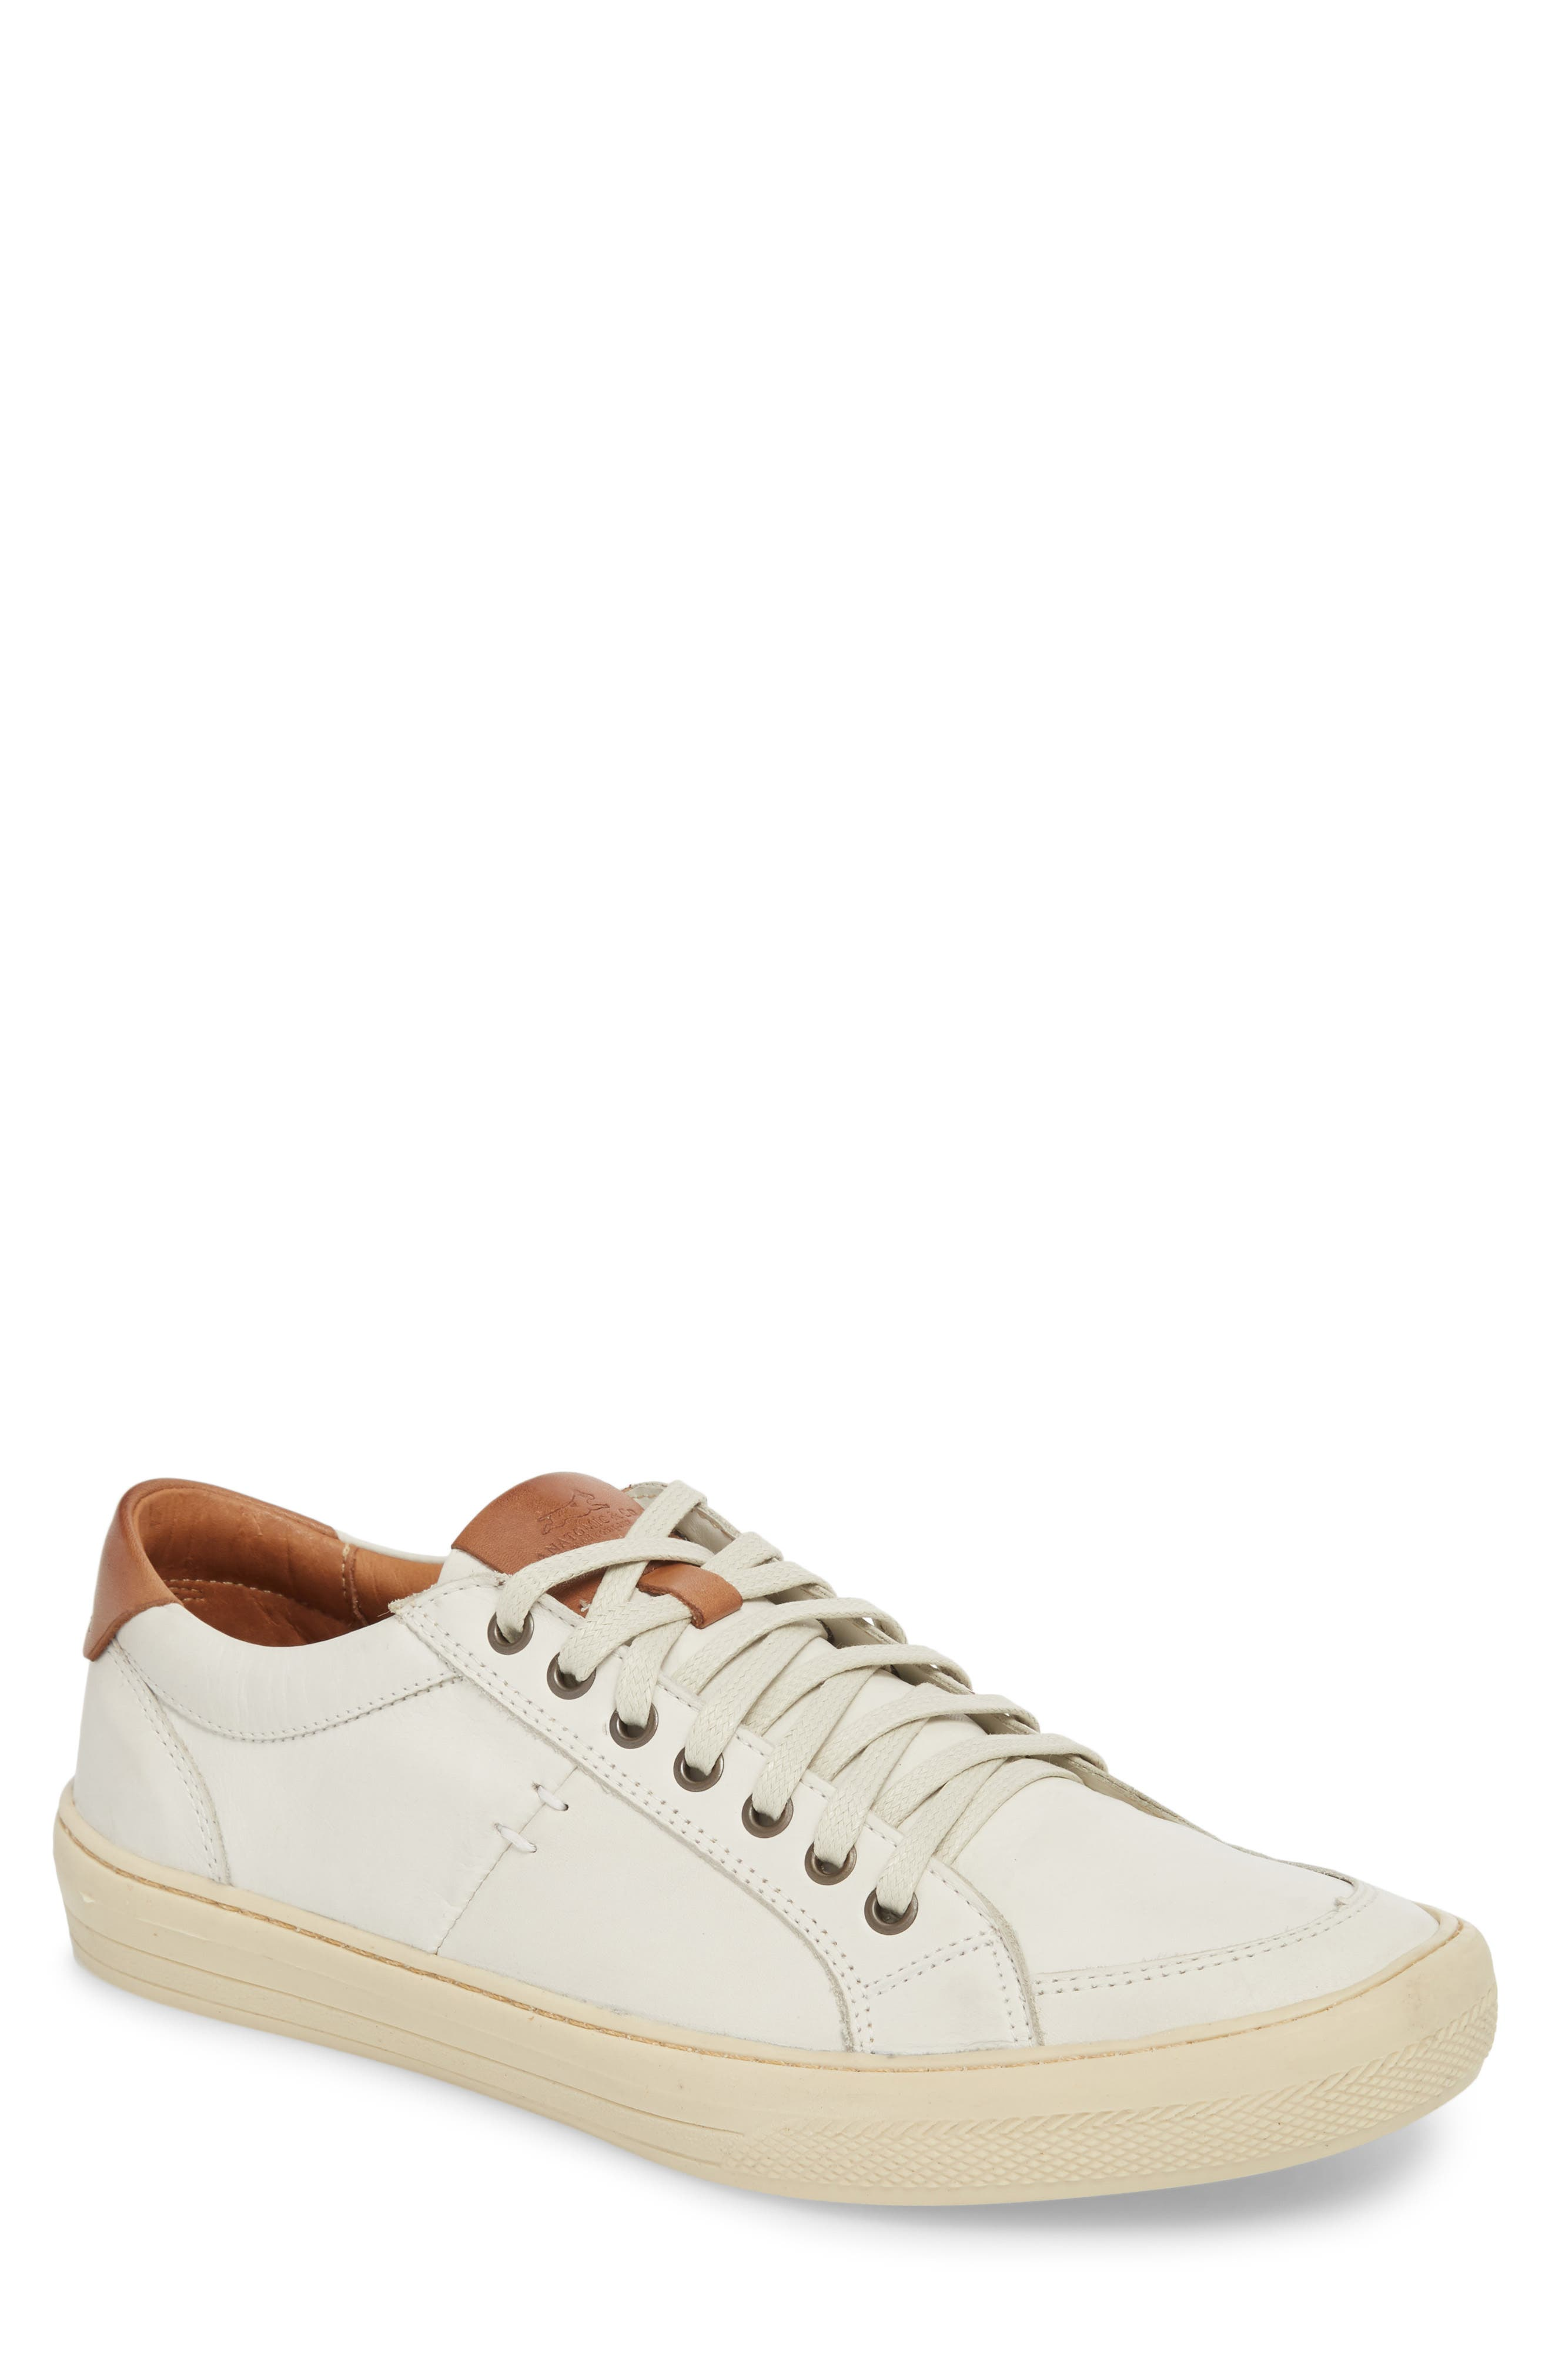 Bilac Low Top Sneaker,                         Main,                         color, Touch Ice/ Bronze Leather